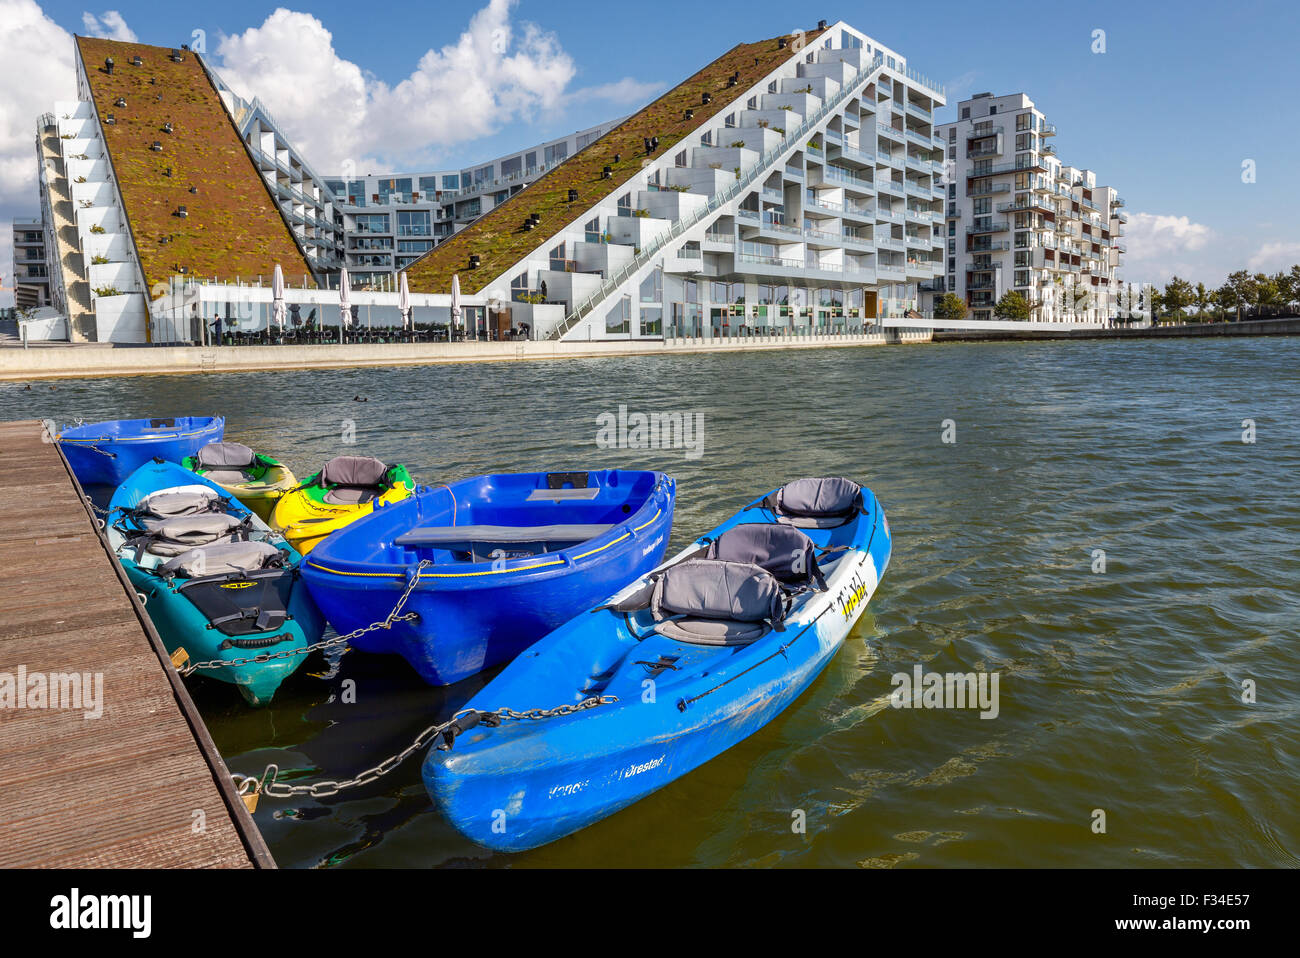 8 House, also known as 8 Tallet or Big House, architect Bjarke Ingels, 2011 prize for best building in the world, Stock Photo